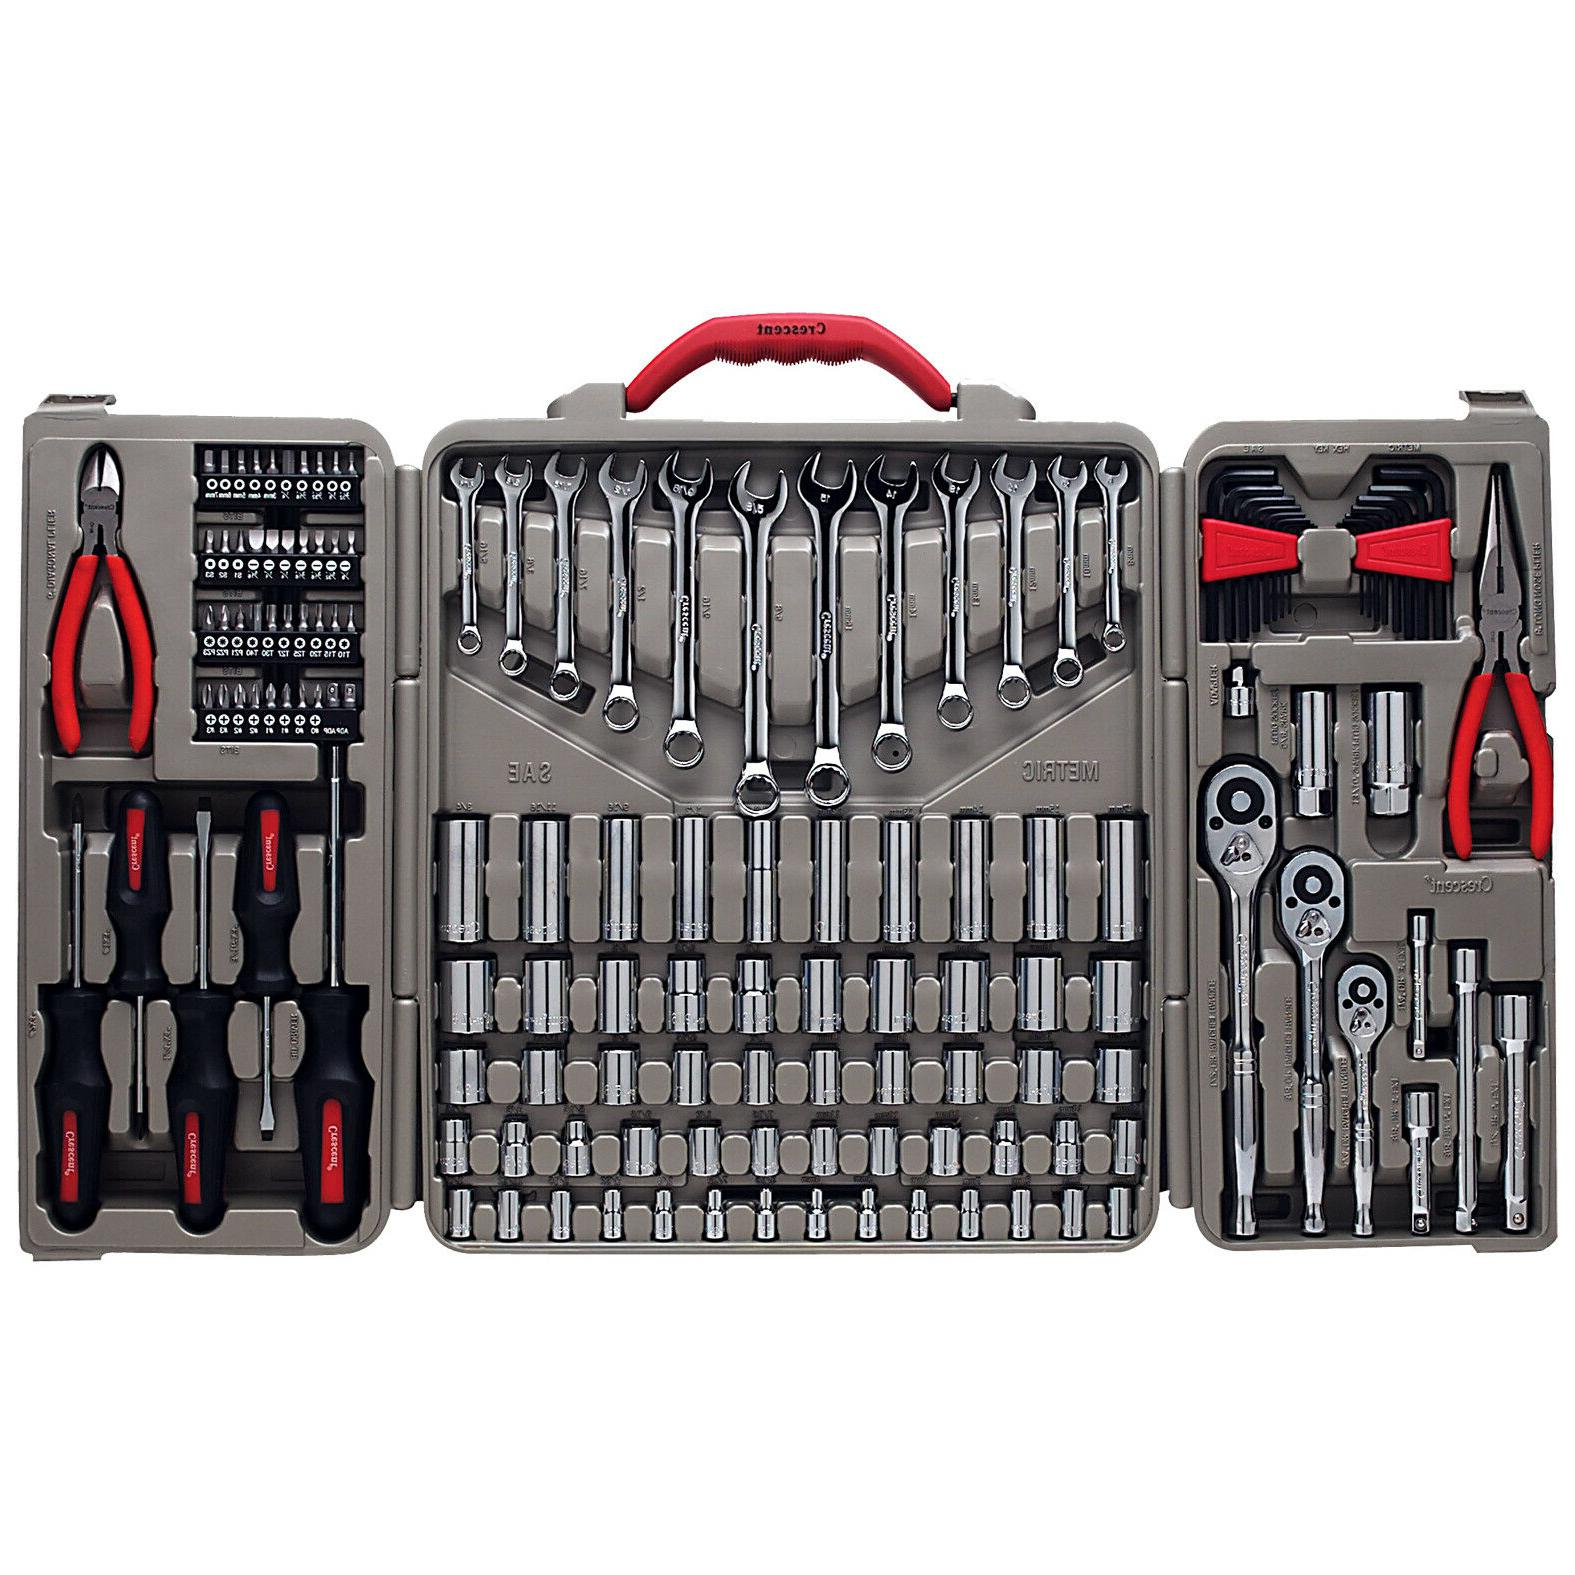 TOOL SET Crescent CTK148MPN 148 Piece Professional Mechanics